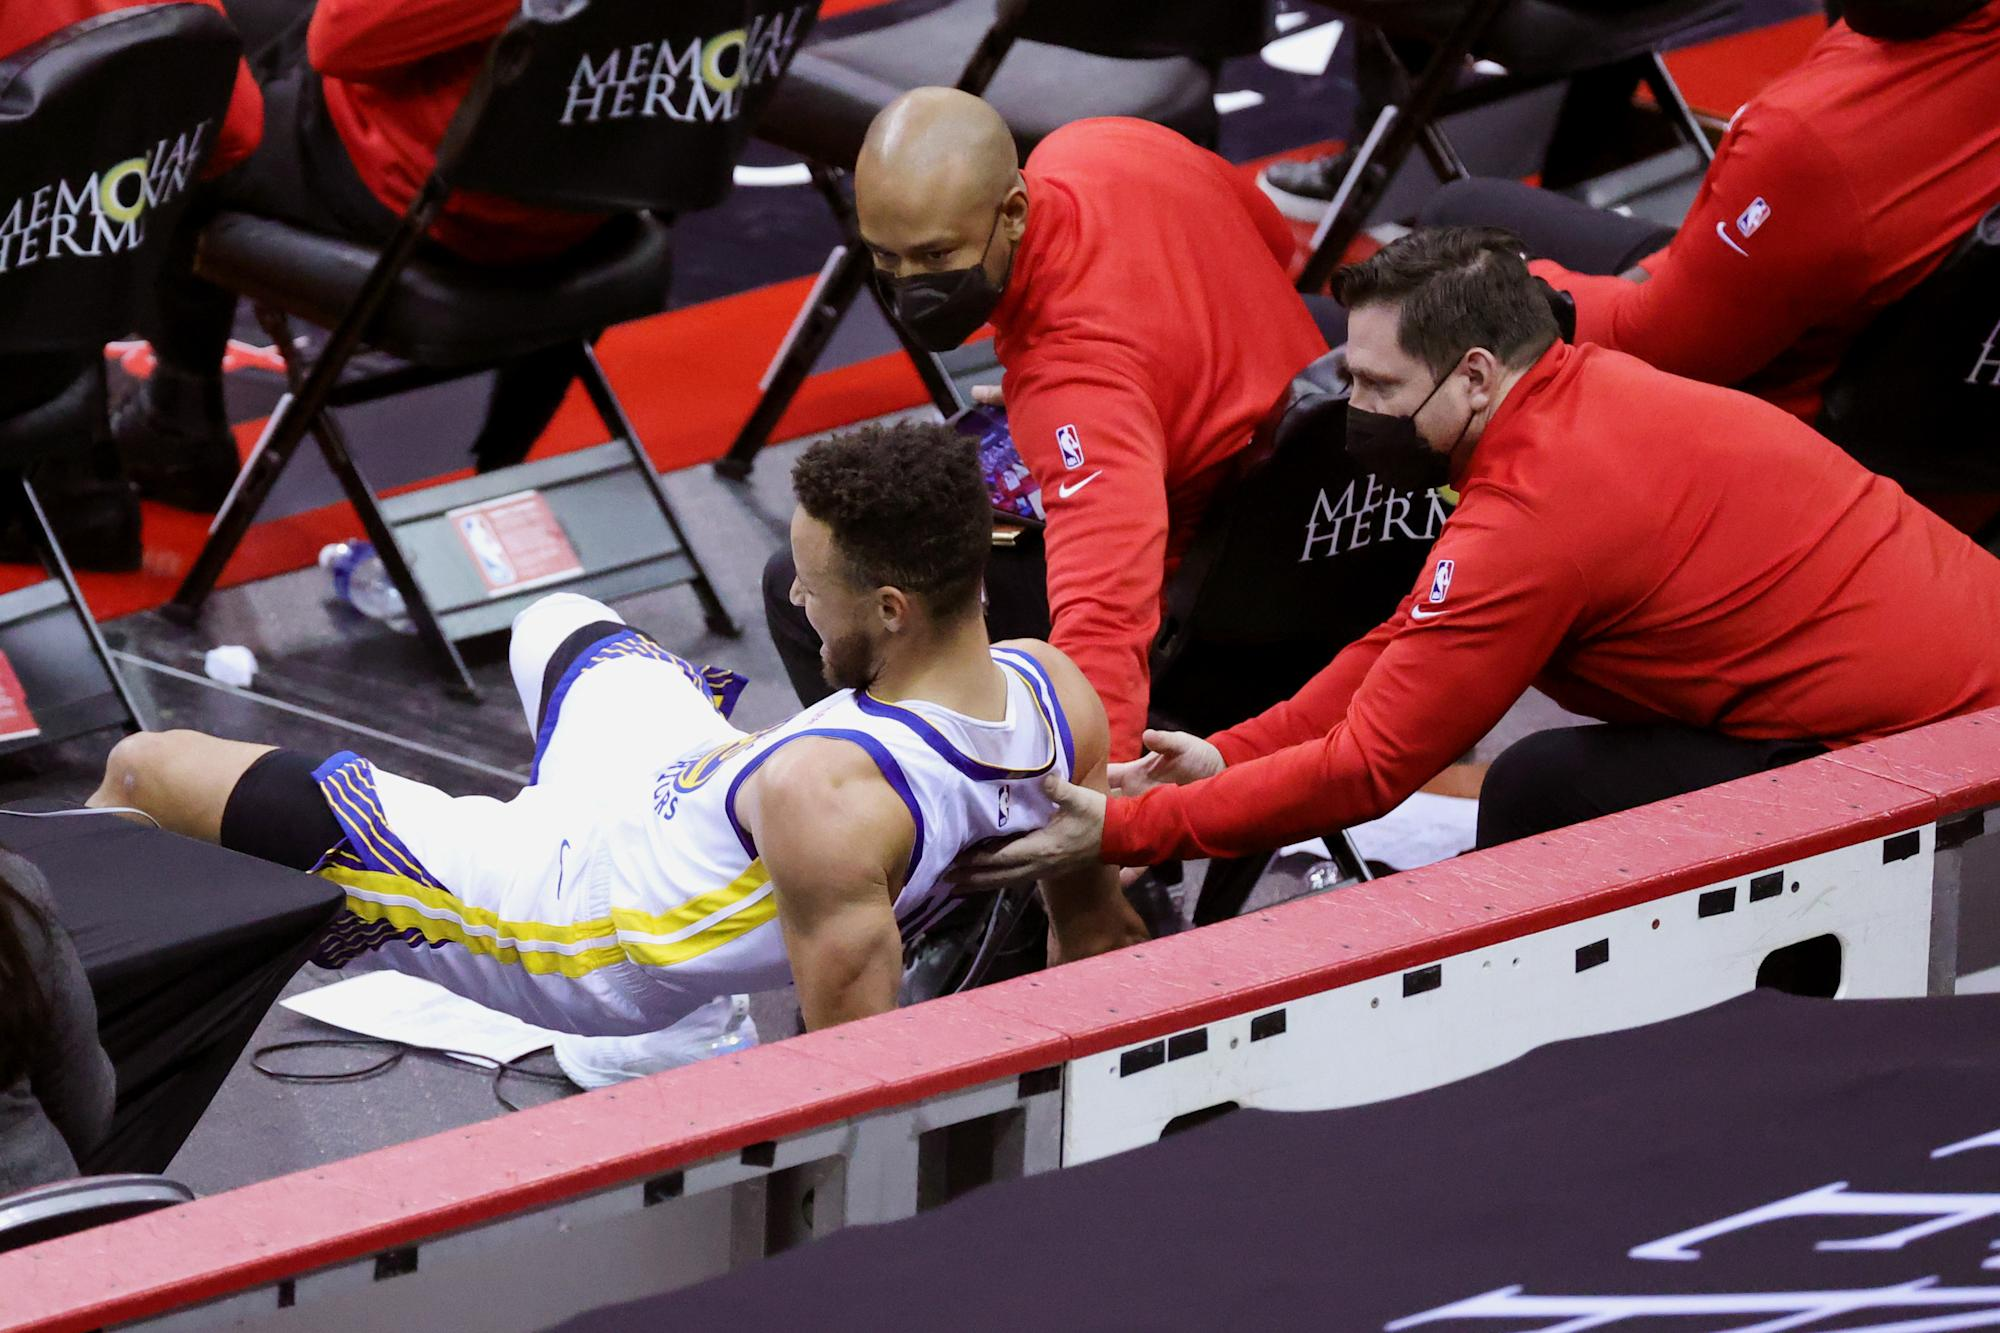 Stephen Curry injured tailbone after brutal sideline fall in win over Rockets - Yahoo Sport Australia